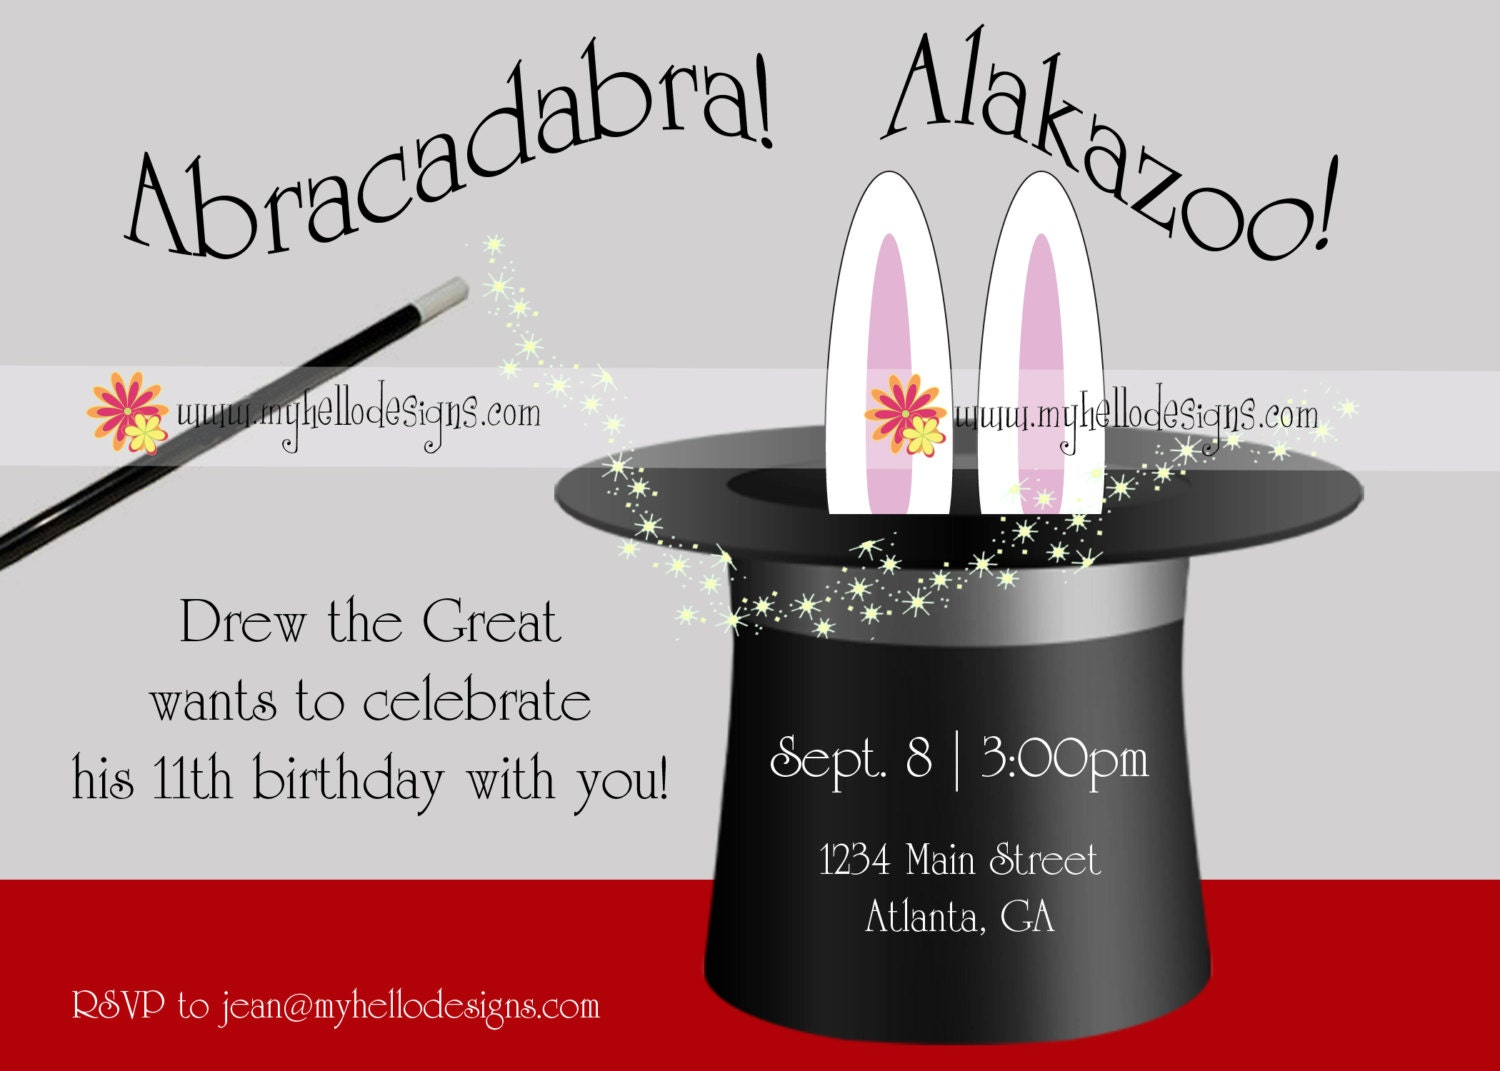 Birthday Invitations: Magic with Hat & Bunny